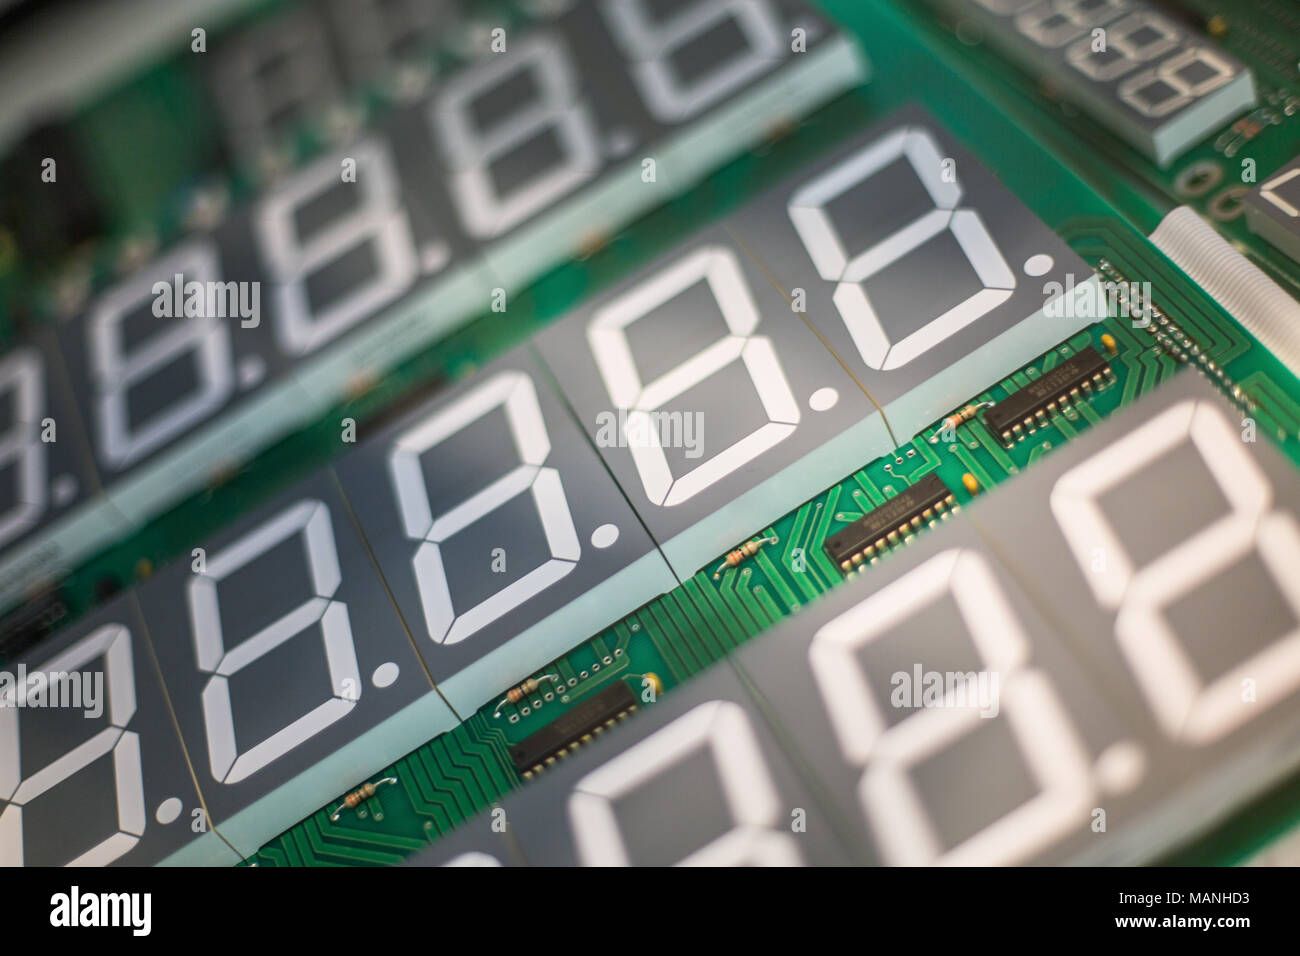 Circuit Board For Electronic Components With Digital Display Stock Stockfoto Printed Pcb Used In Industrial